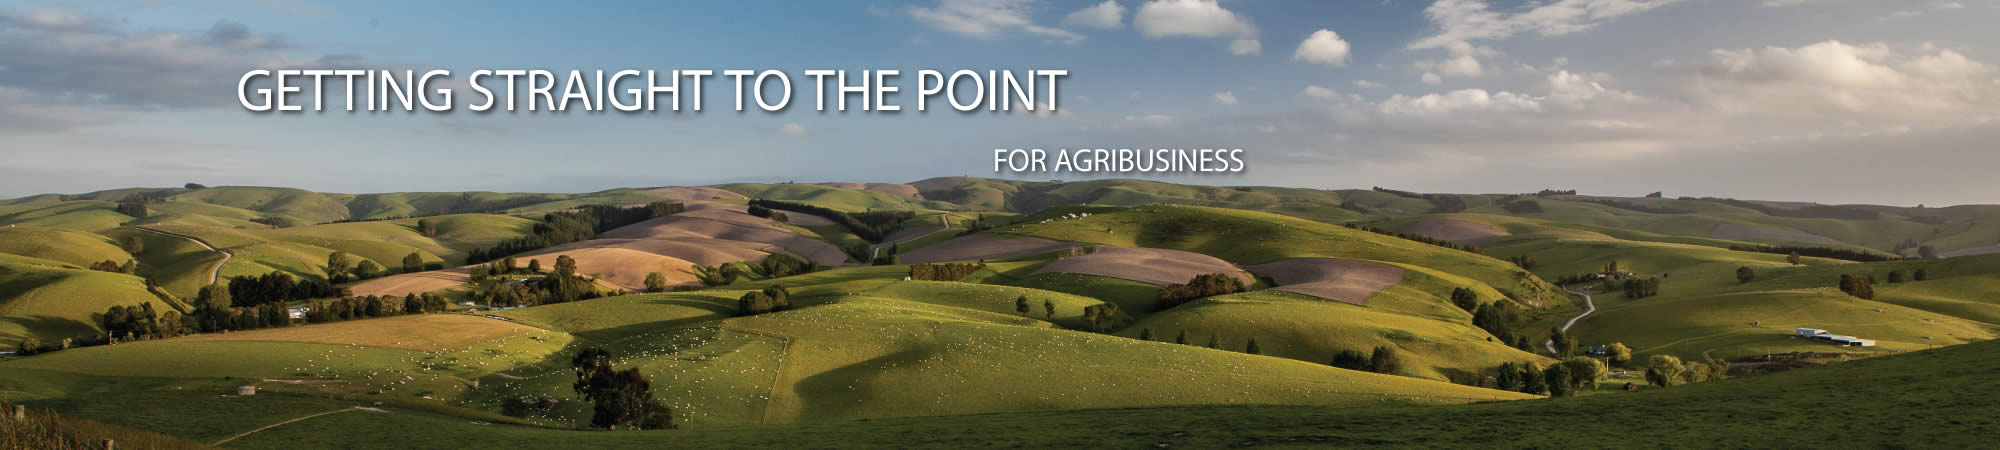 Getting straight for agribusiness